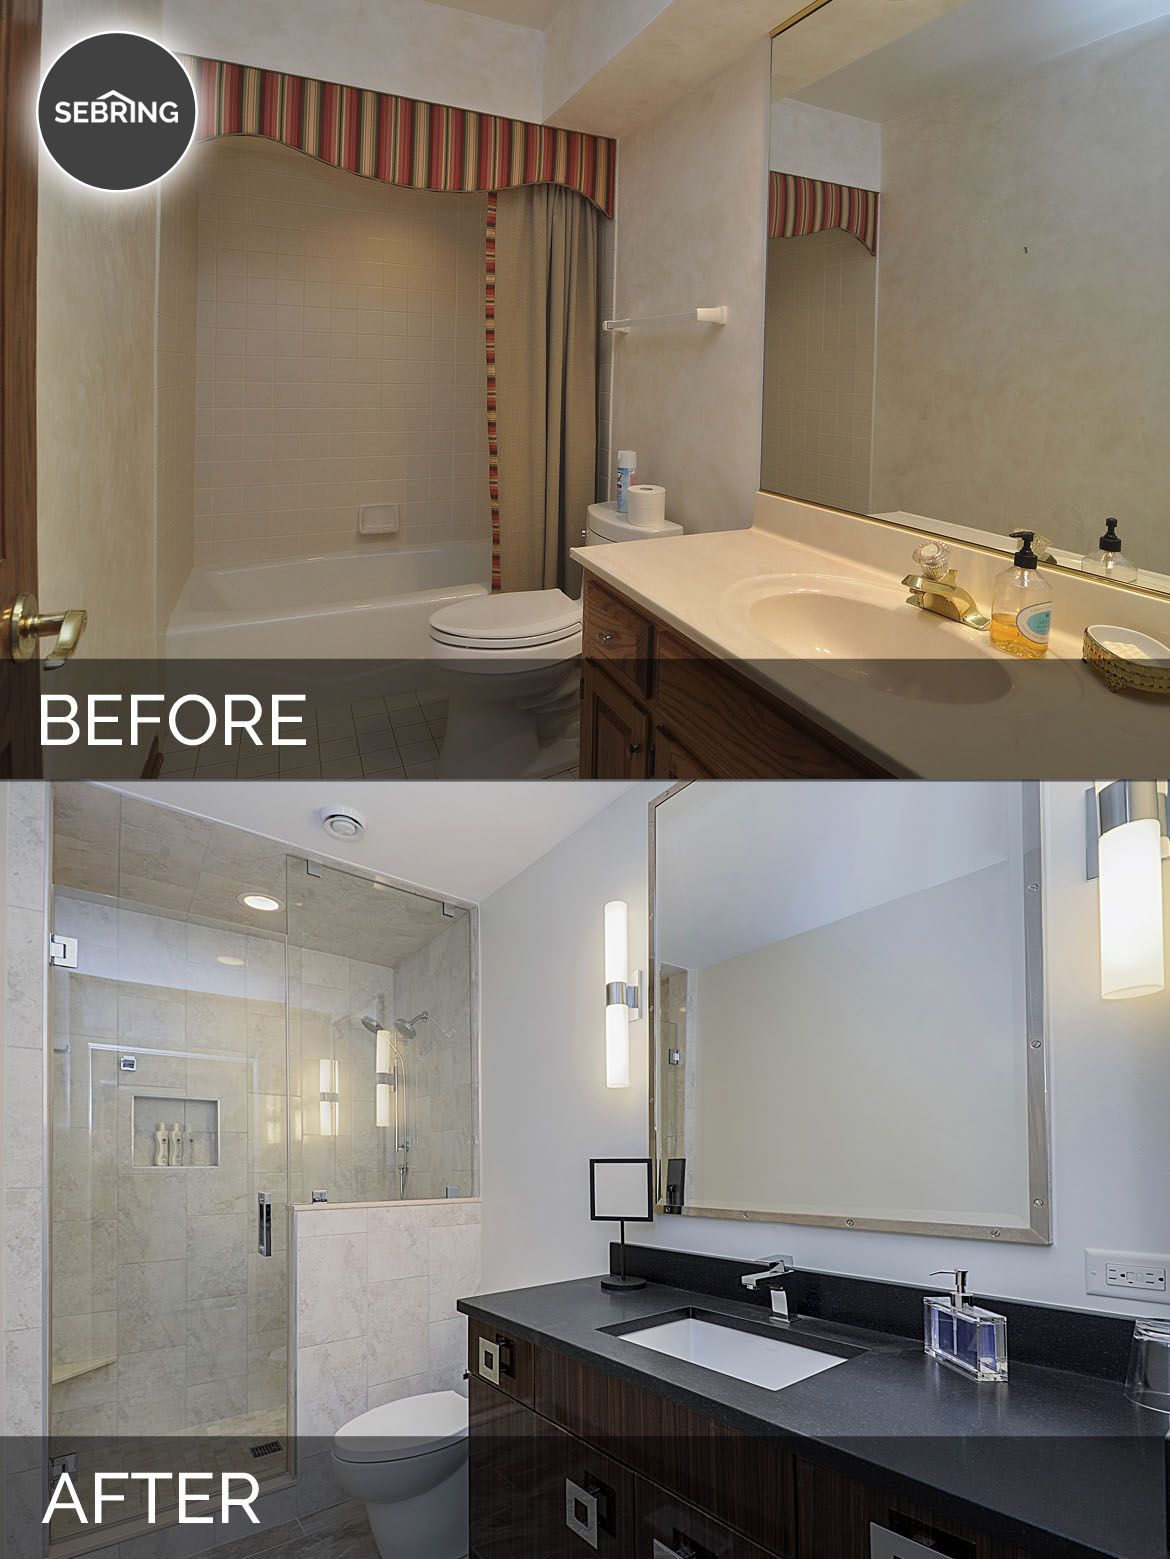 Home Remodeling Ideas Gallery: Jeff & Betsy's Hall Bath Before And After Pictures